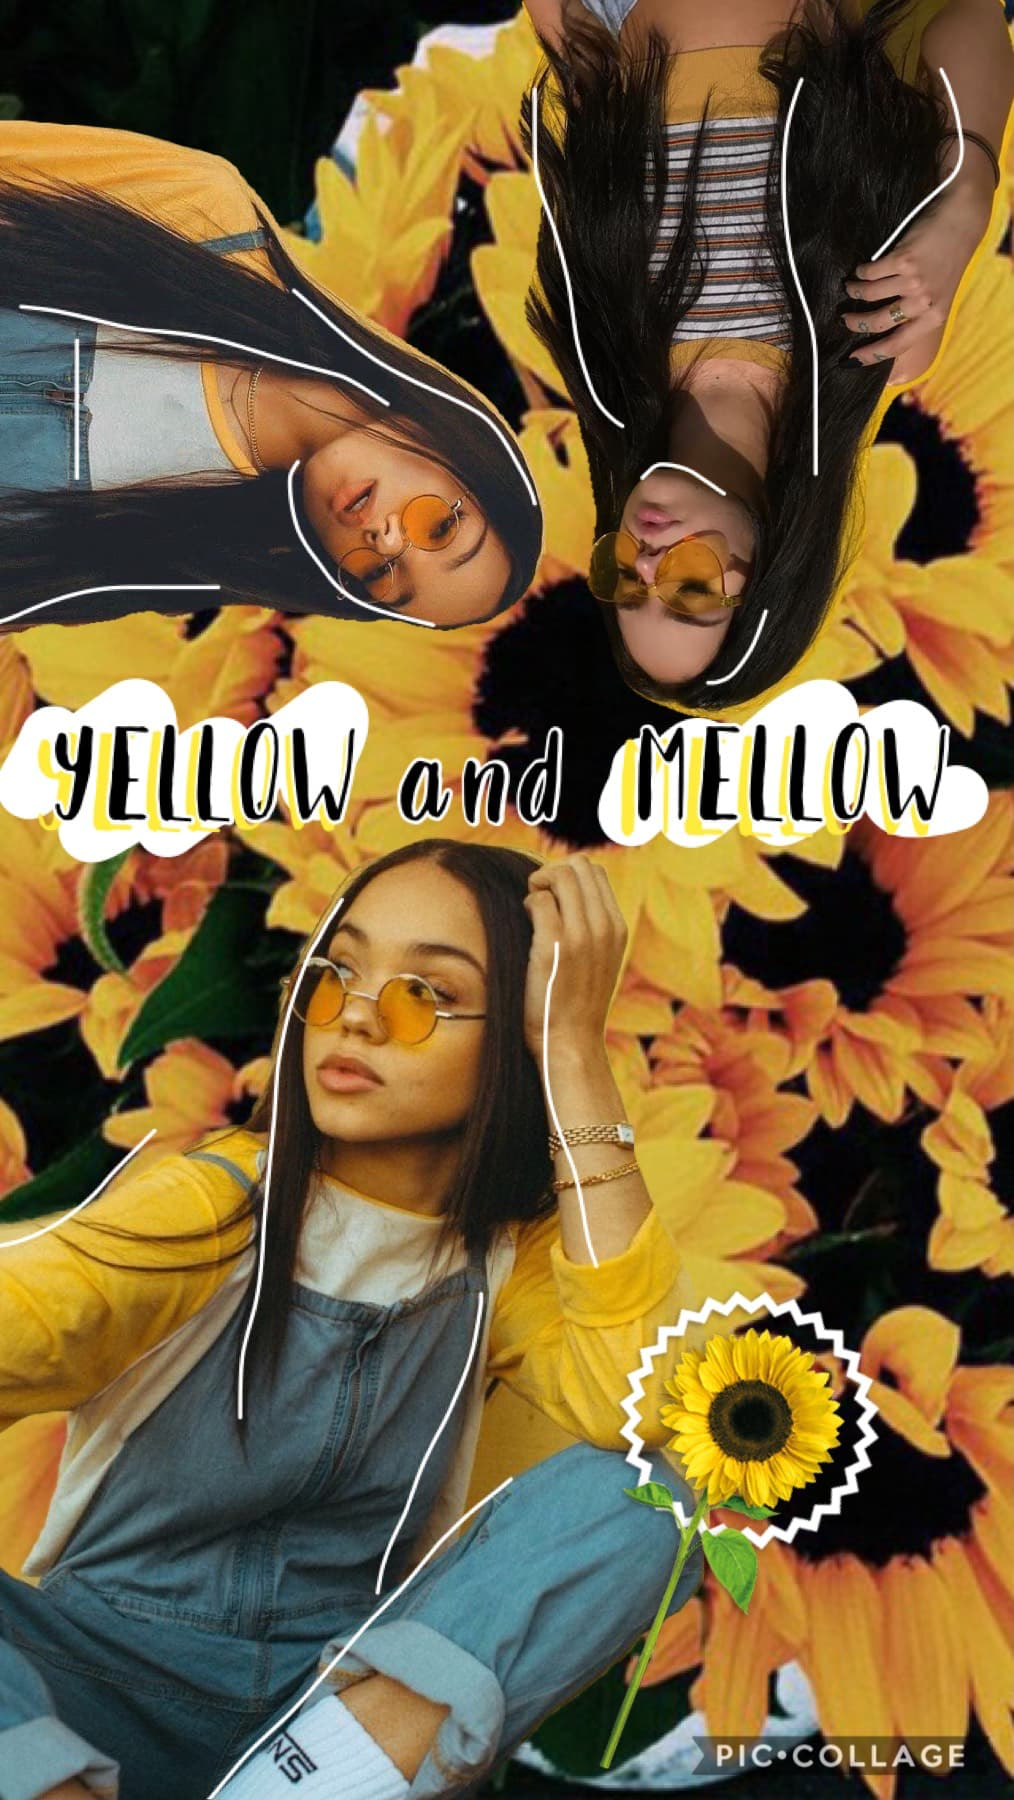 i am so sorry (tap🌻) sooo i haven't been on pc for like... two weeks? and i'm so sorry! there's been things going on and INSPO HAS BEEN SO ANNOYING (ty for jayraffe inspo ha 🐝) buut here's a bad yellow collage yay 🌼 RAINBOW #3 - YELLOW 💛